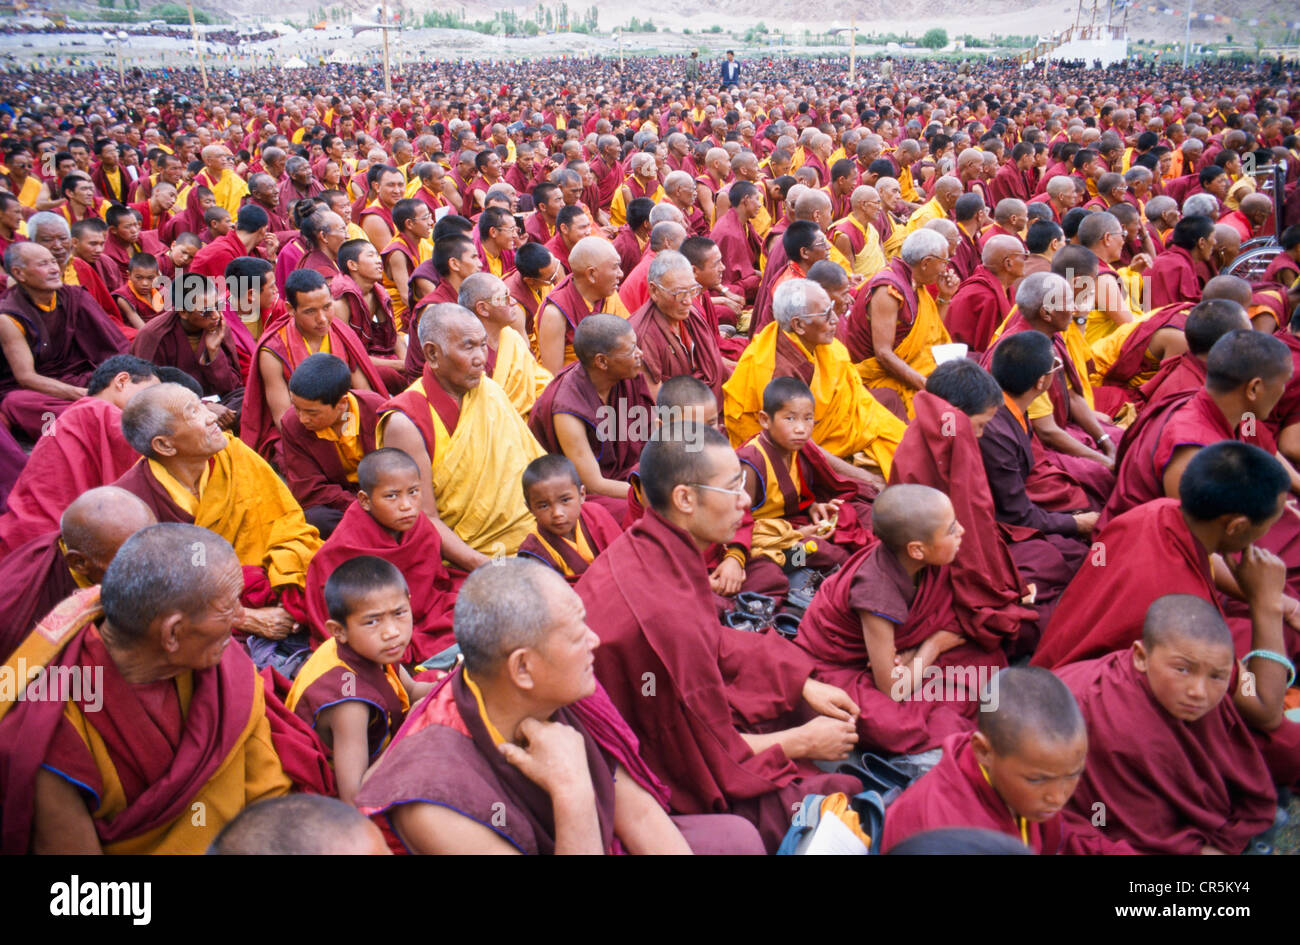 Thousands of Buddhist monks listening to the teachings of the Dalai Lama, Leh, Jammu and Kashmir, India, Asia - Stock Image